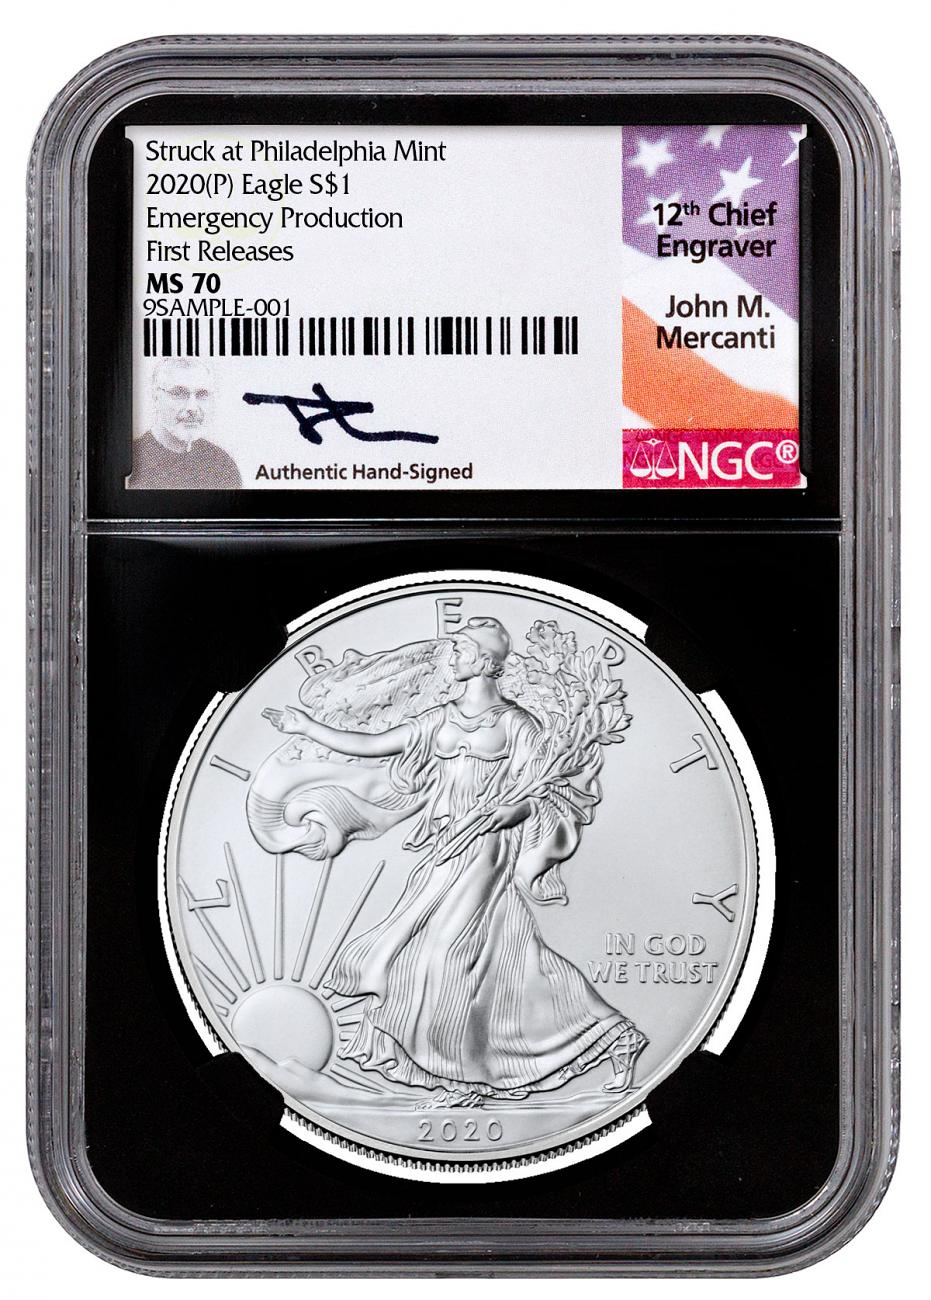 2020-(P) 1 oz Silver American Eagle Struck at Philadelphia $1 Coin Scarce and Unique Coin Division NGC MS70 FR Black Core Holder Mercanti Signed Label